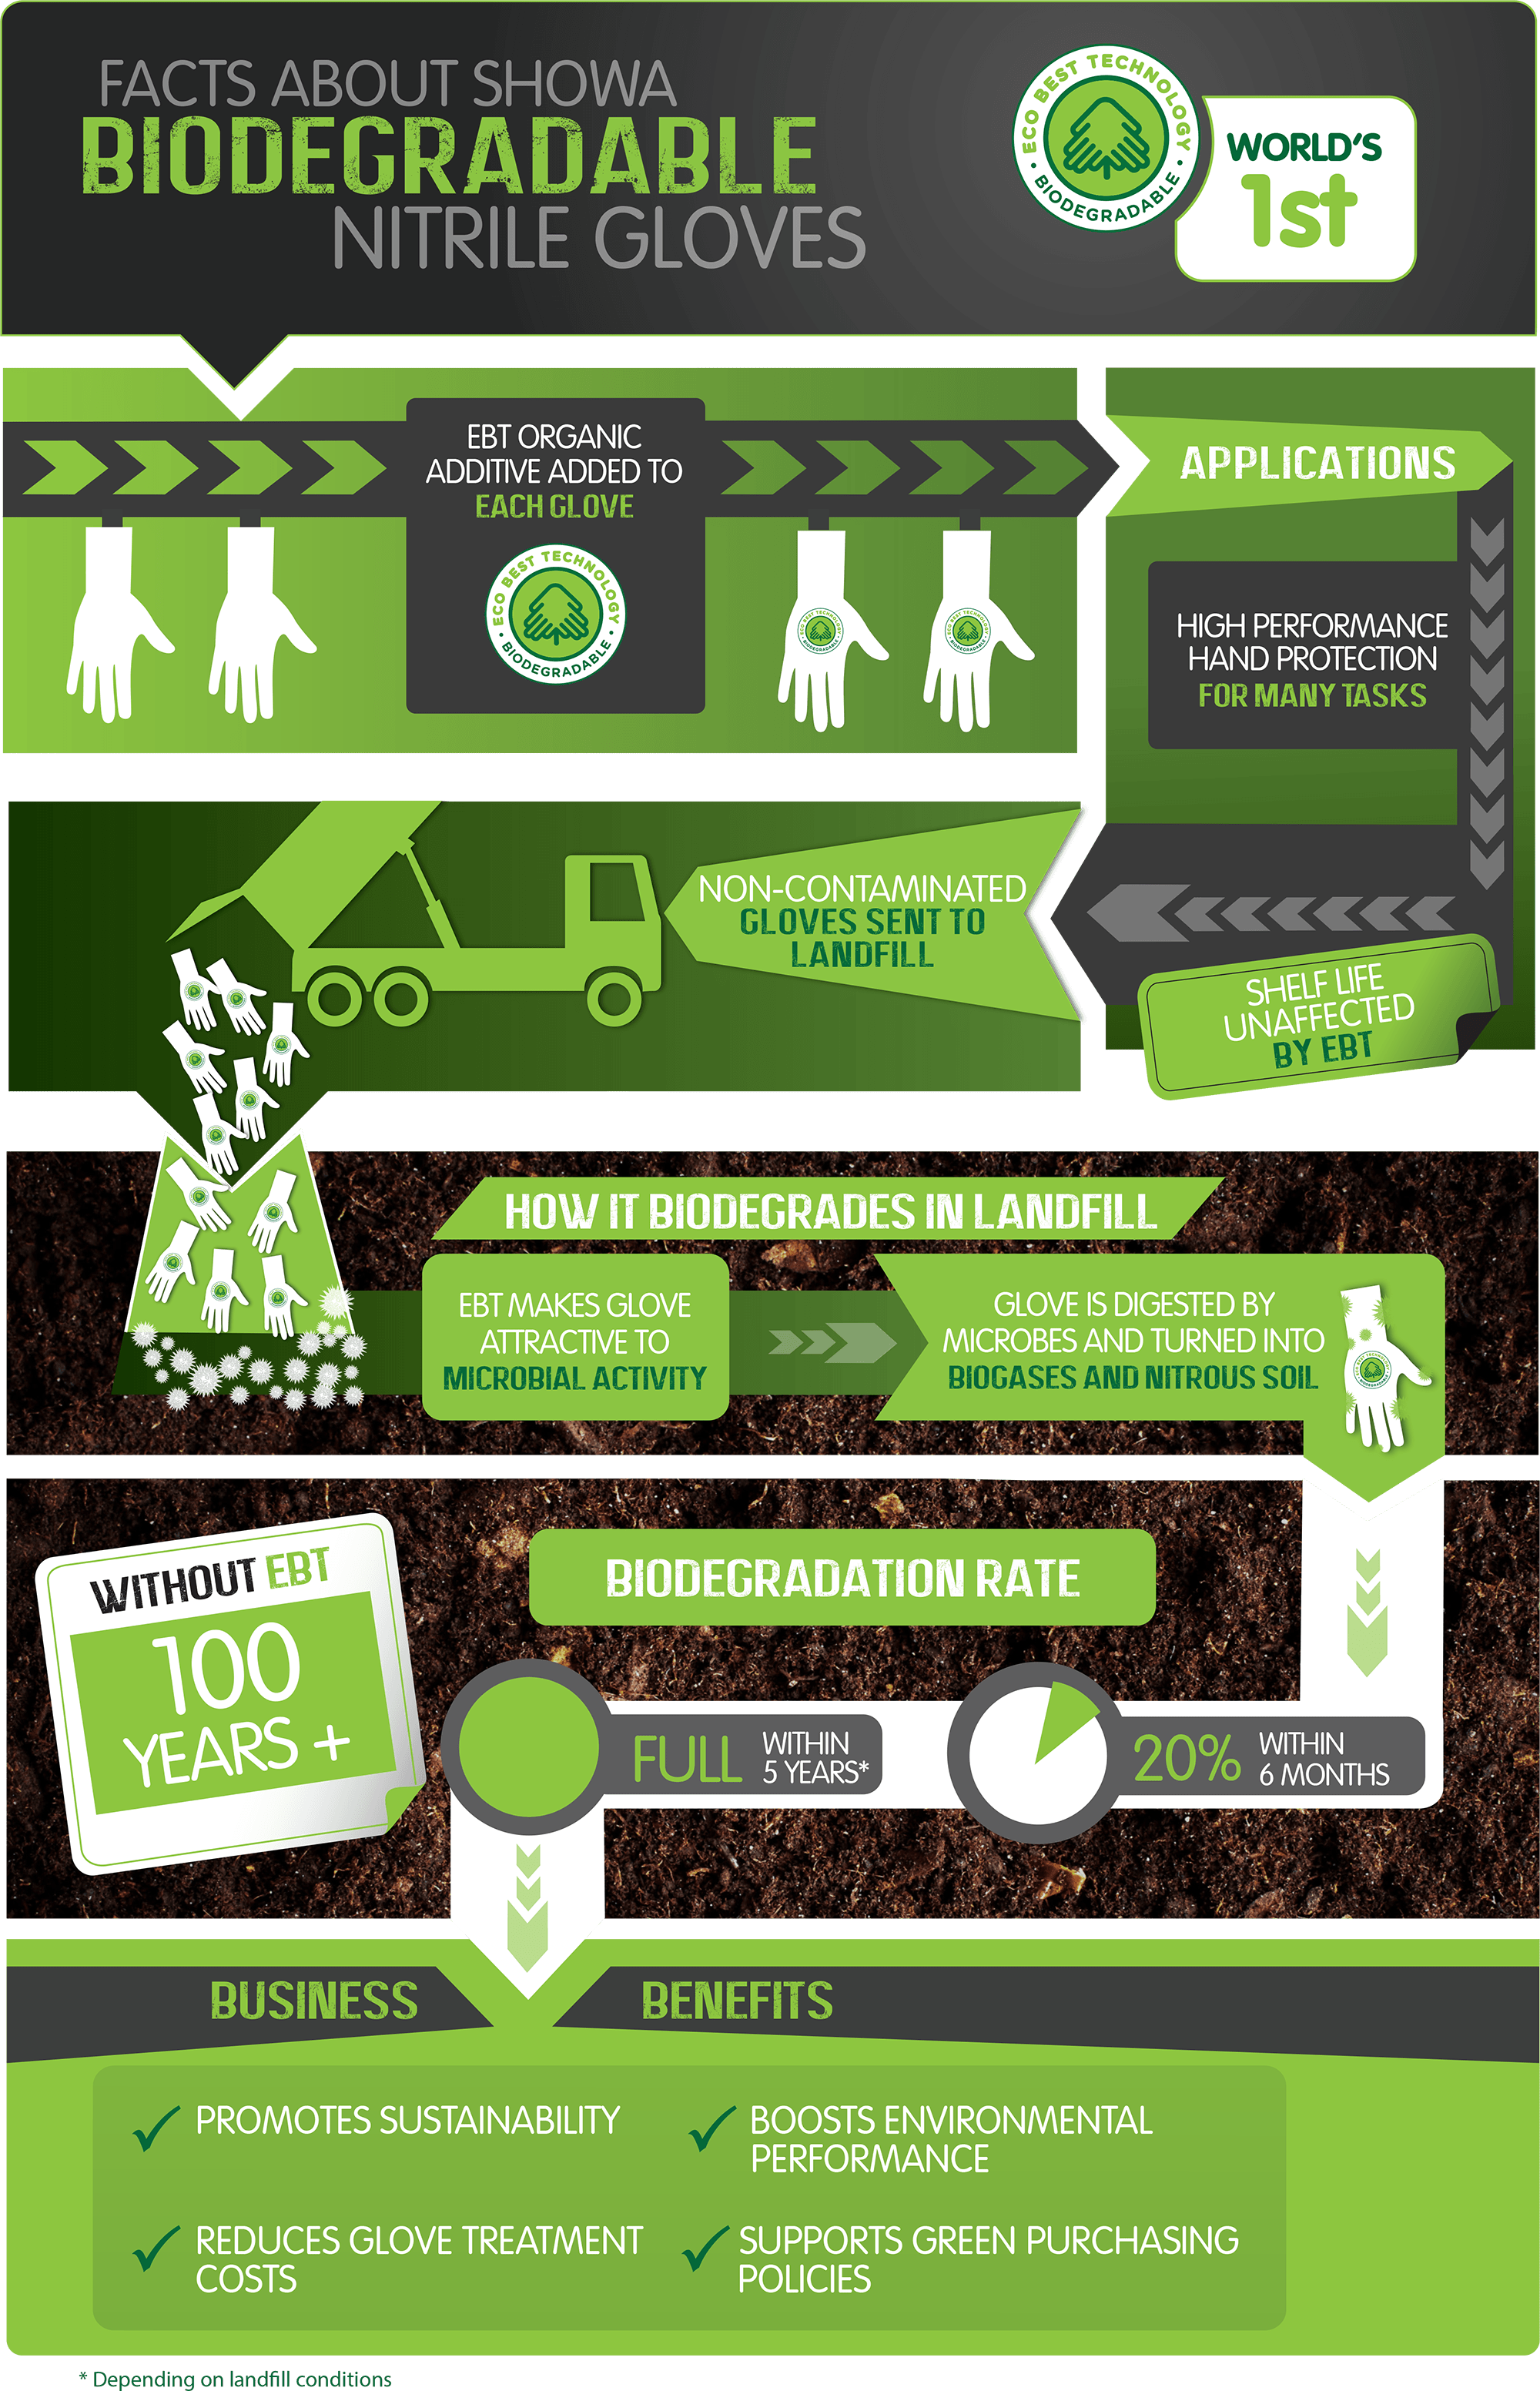 Facts about showa biodegradable nitrile gloves infographic - text version follows